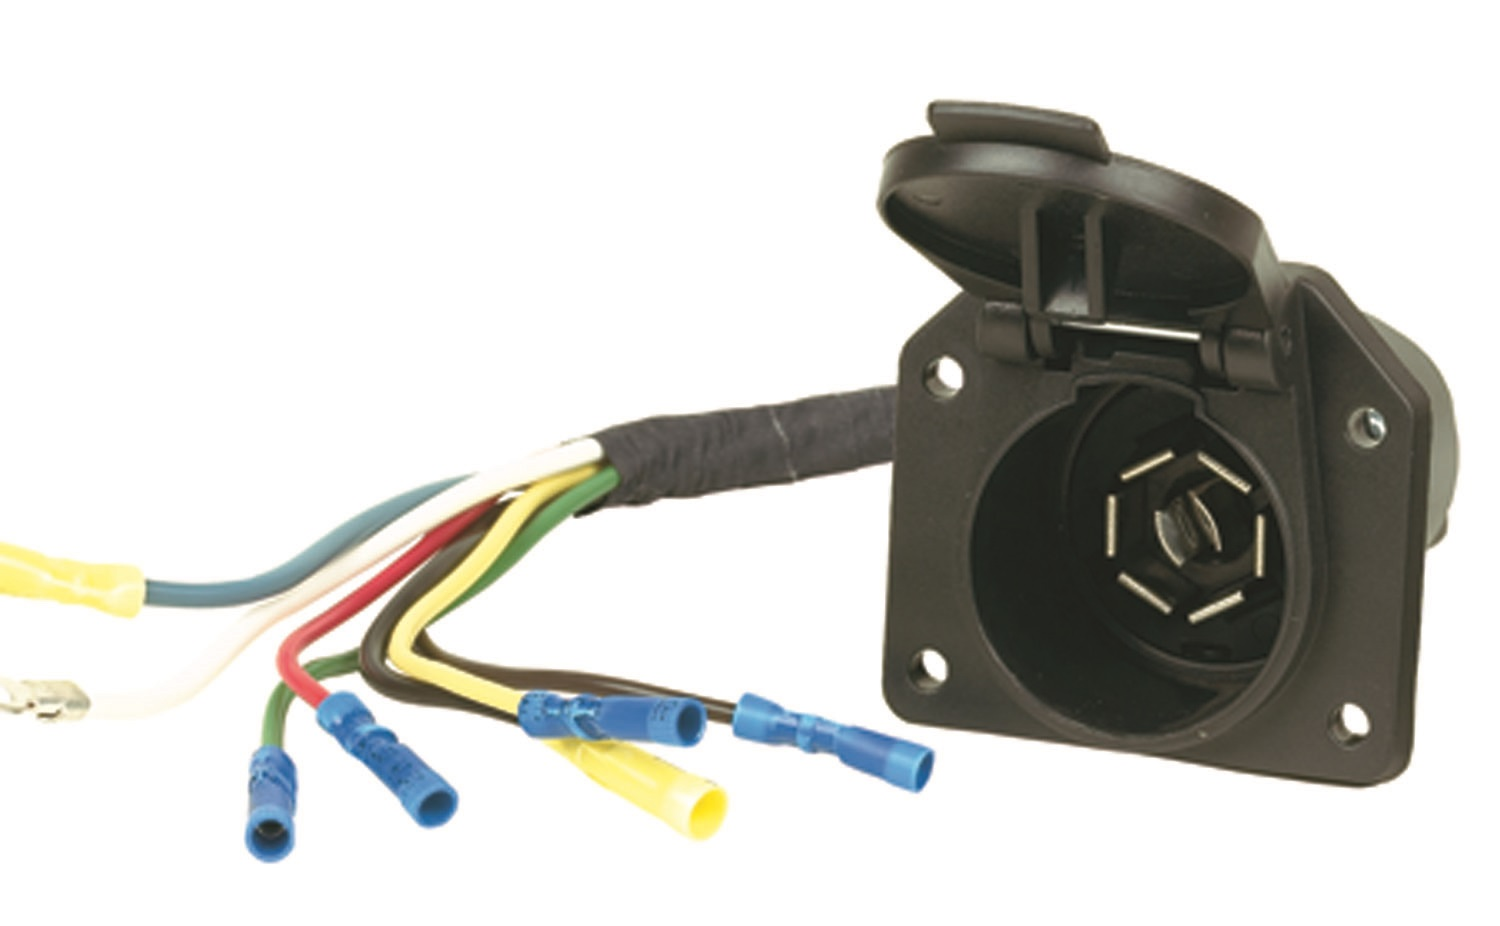 hopkins towing solution trailer wiring harness 41145 Vehicle Specific Trailer Wiring Harness